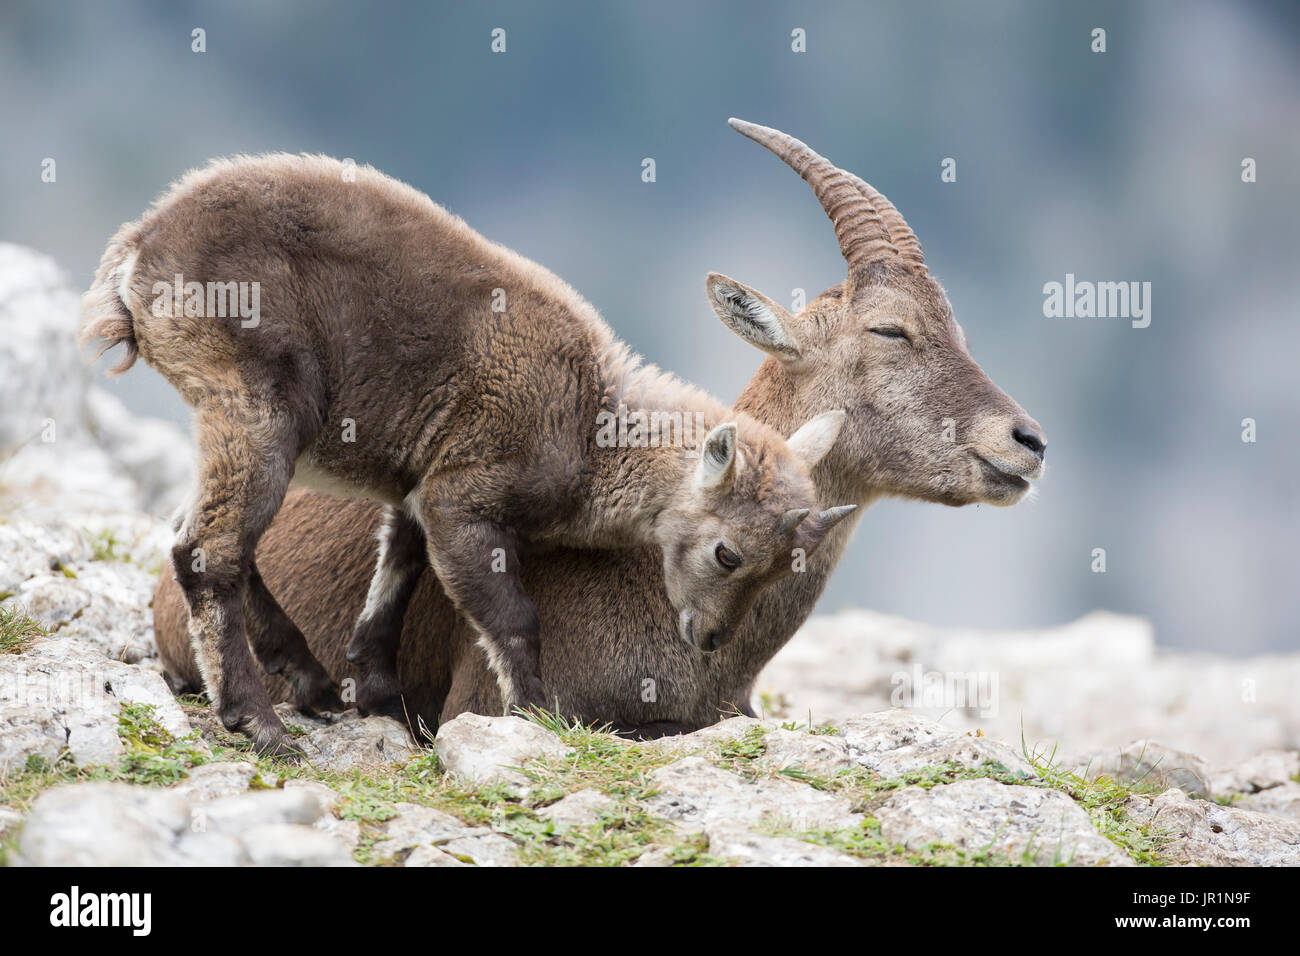 Alpine Ibex (Capra ibex) female and young cuddling, France - Stock Image